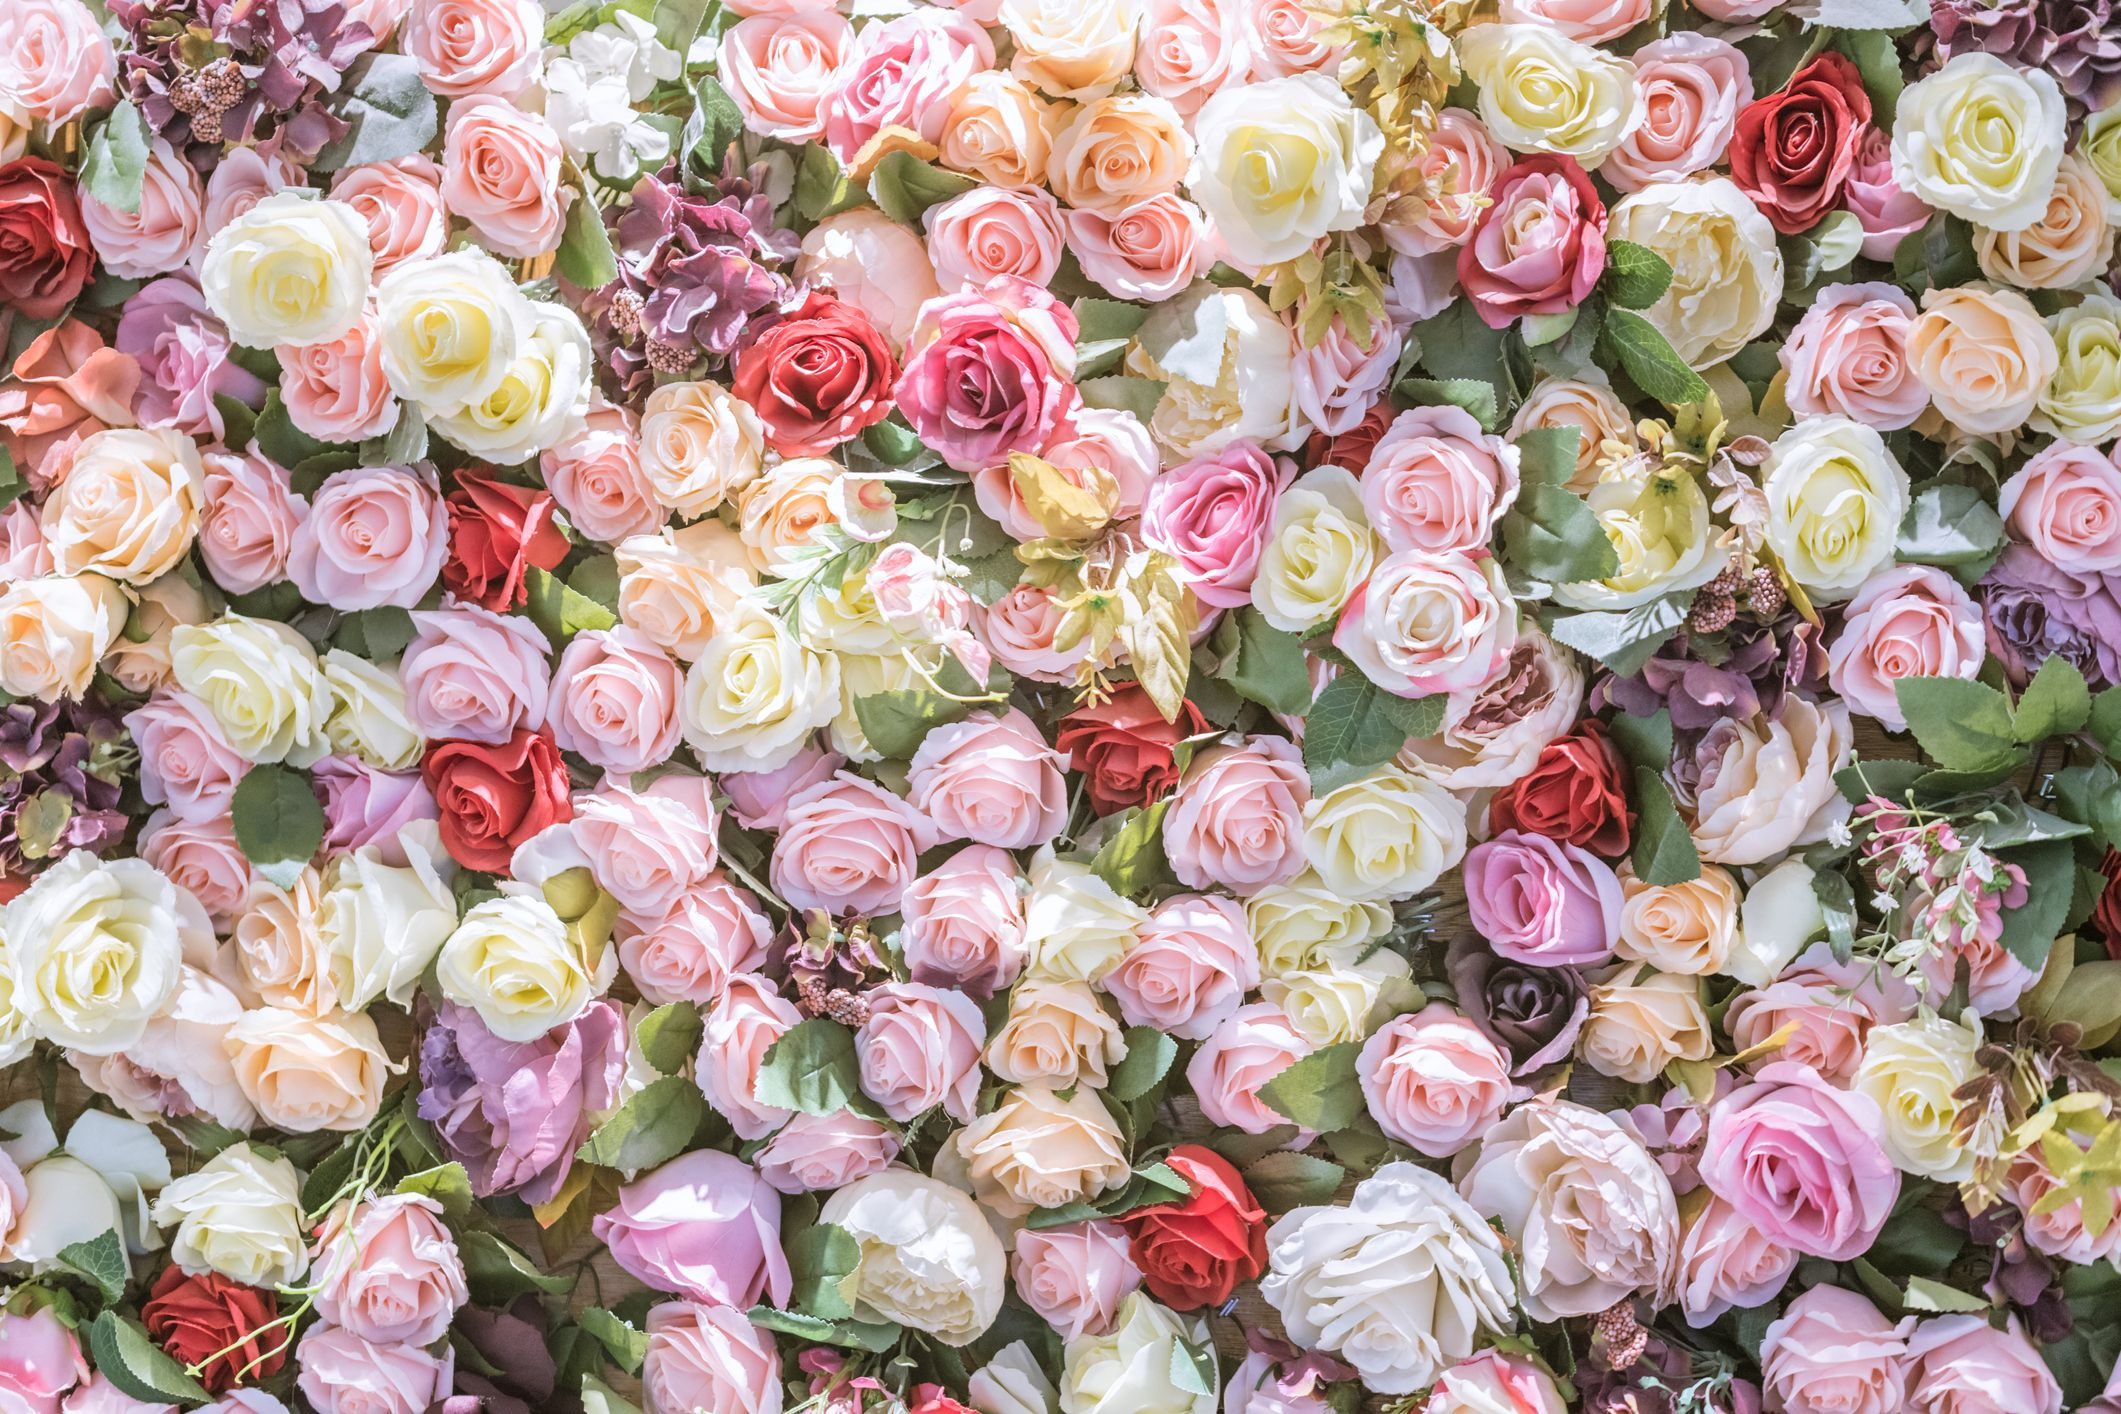 16 Rose Color Meanings Explained Roses For Every Occasion